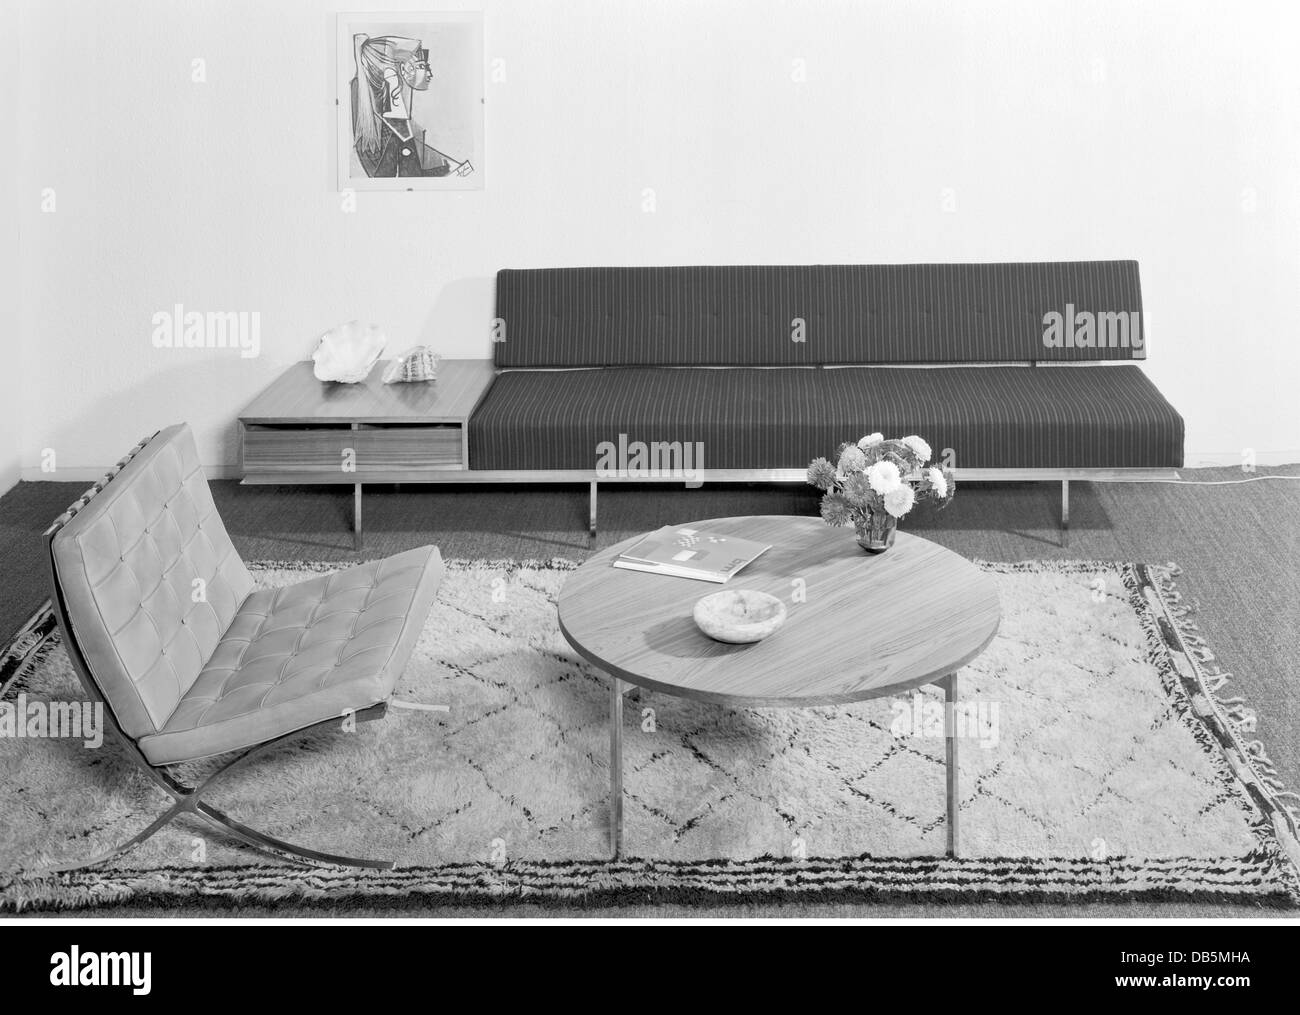 Stock Photo   Furniture, Living Room, 1960, 1960s, 60s, 20th Century,  Historic, Historical, Seating Furniture, Couch, Chaise, Chaise Longue, C